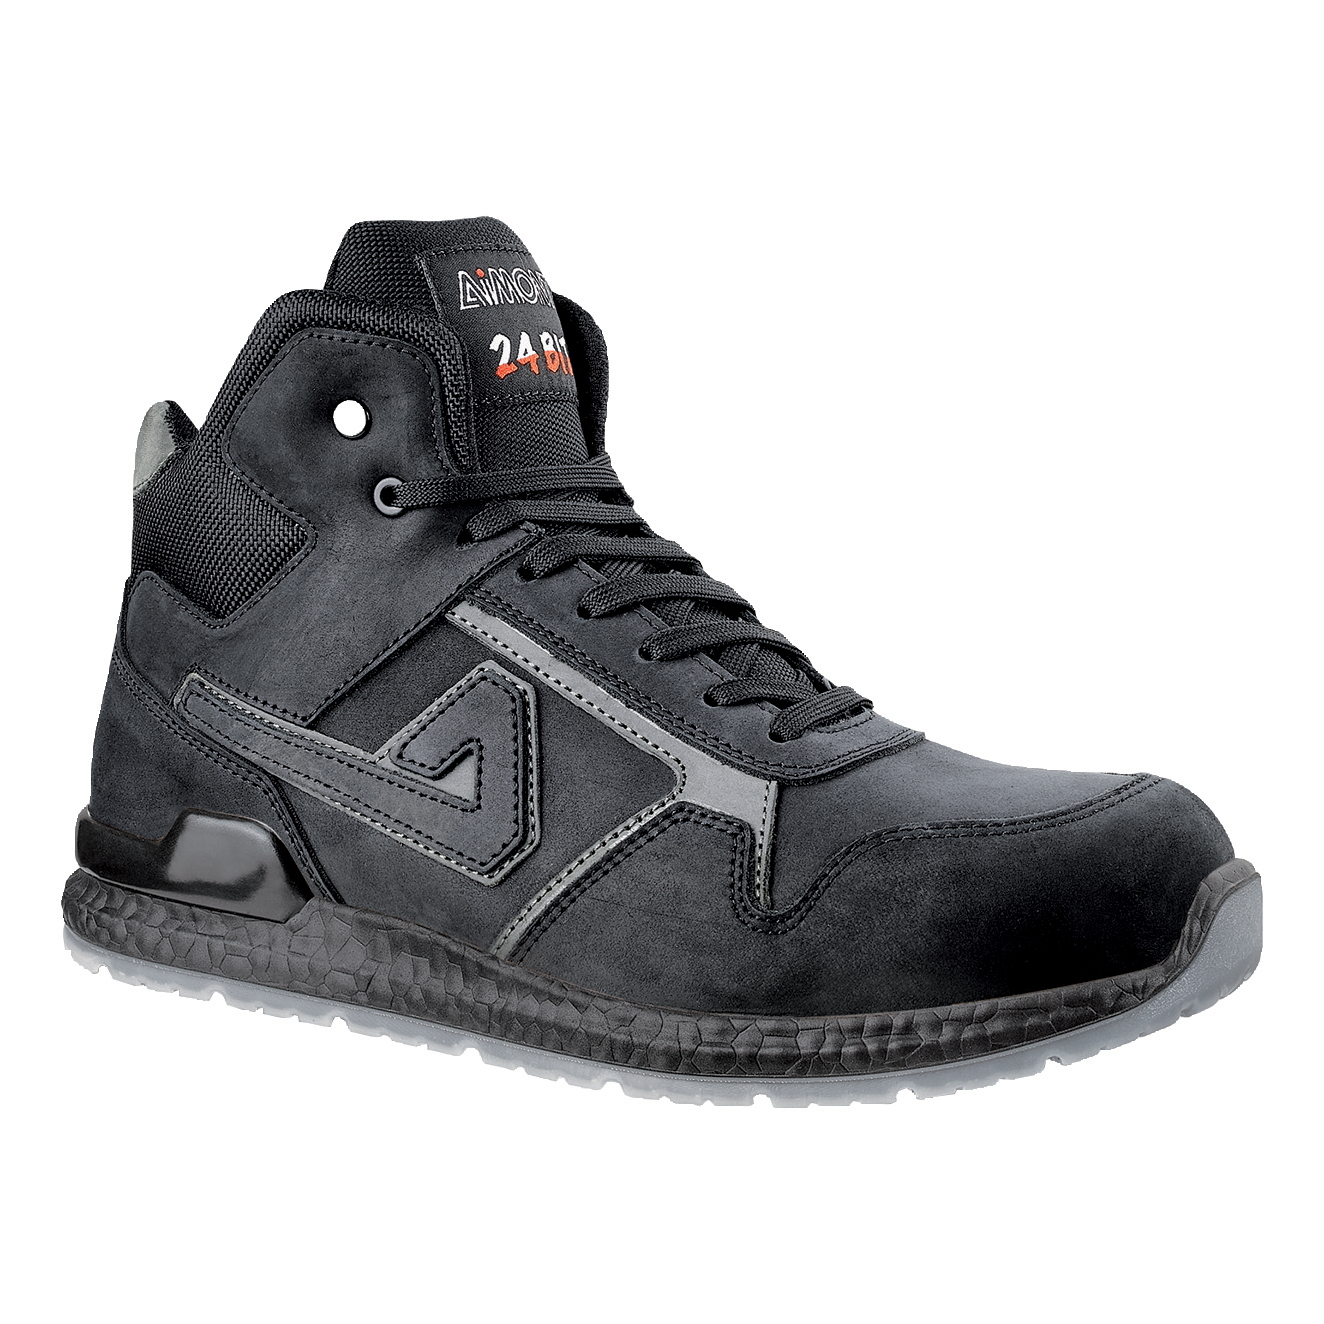 Aimont Kanye Safety Boots Protective Toecap Size 12 Black Ref AB10412 Pair